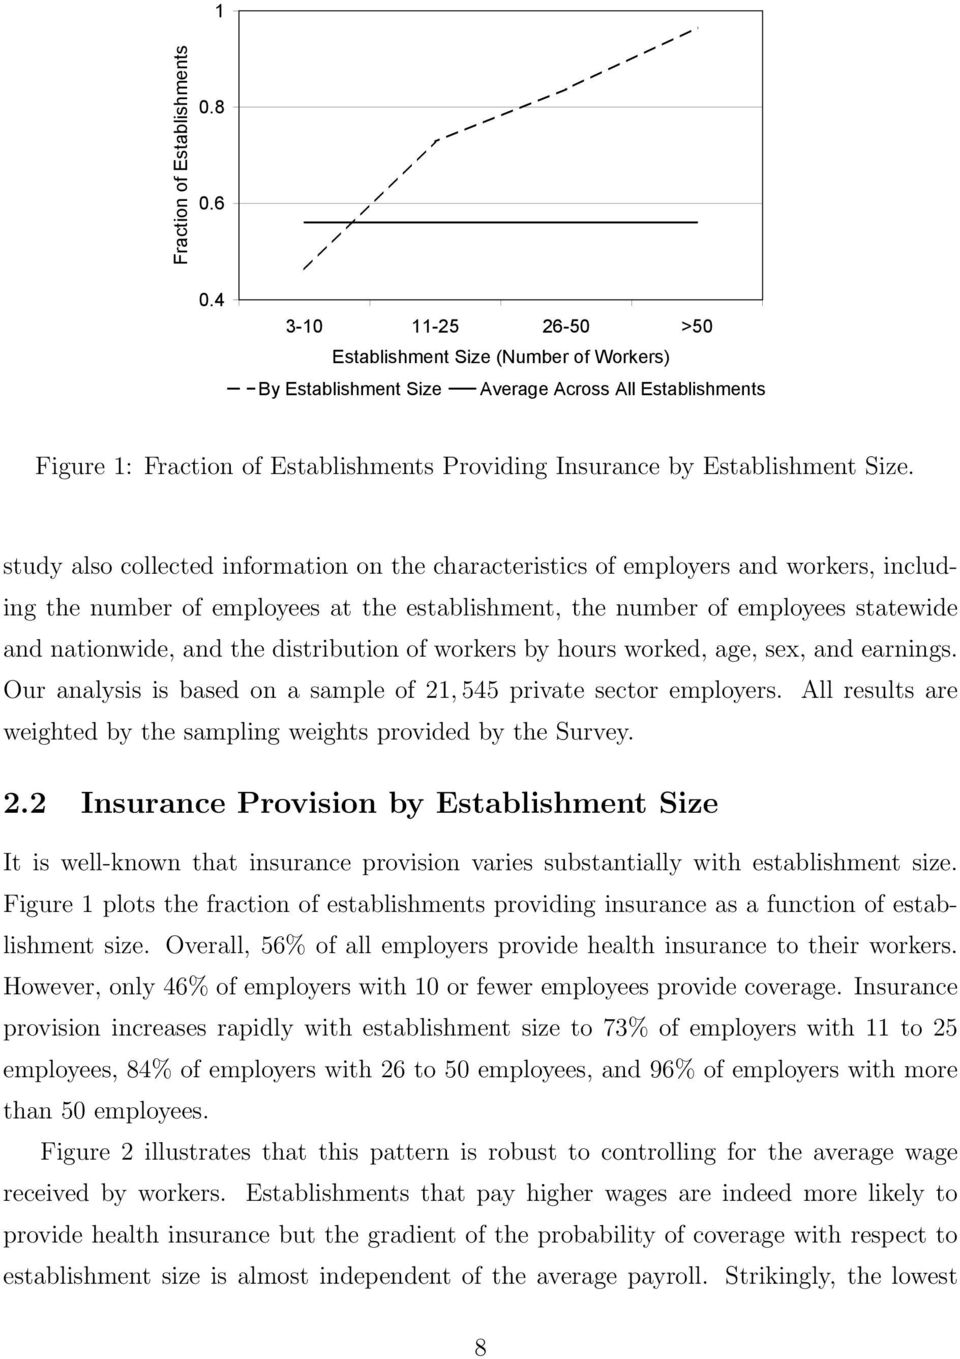 study also collected information on the characteristics of employers and workers, including the number of employees at the establishment, the number of employees statewide and nationwide, and the